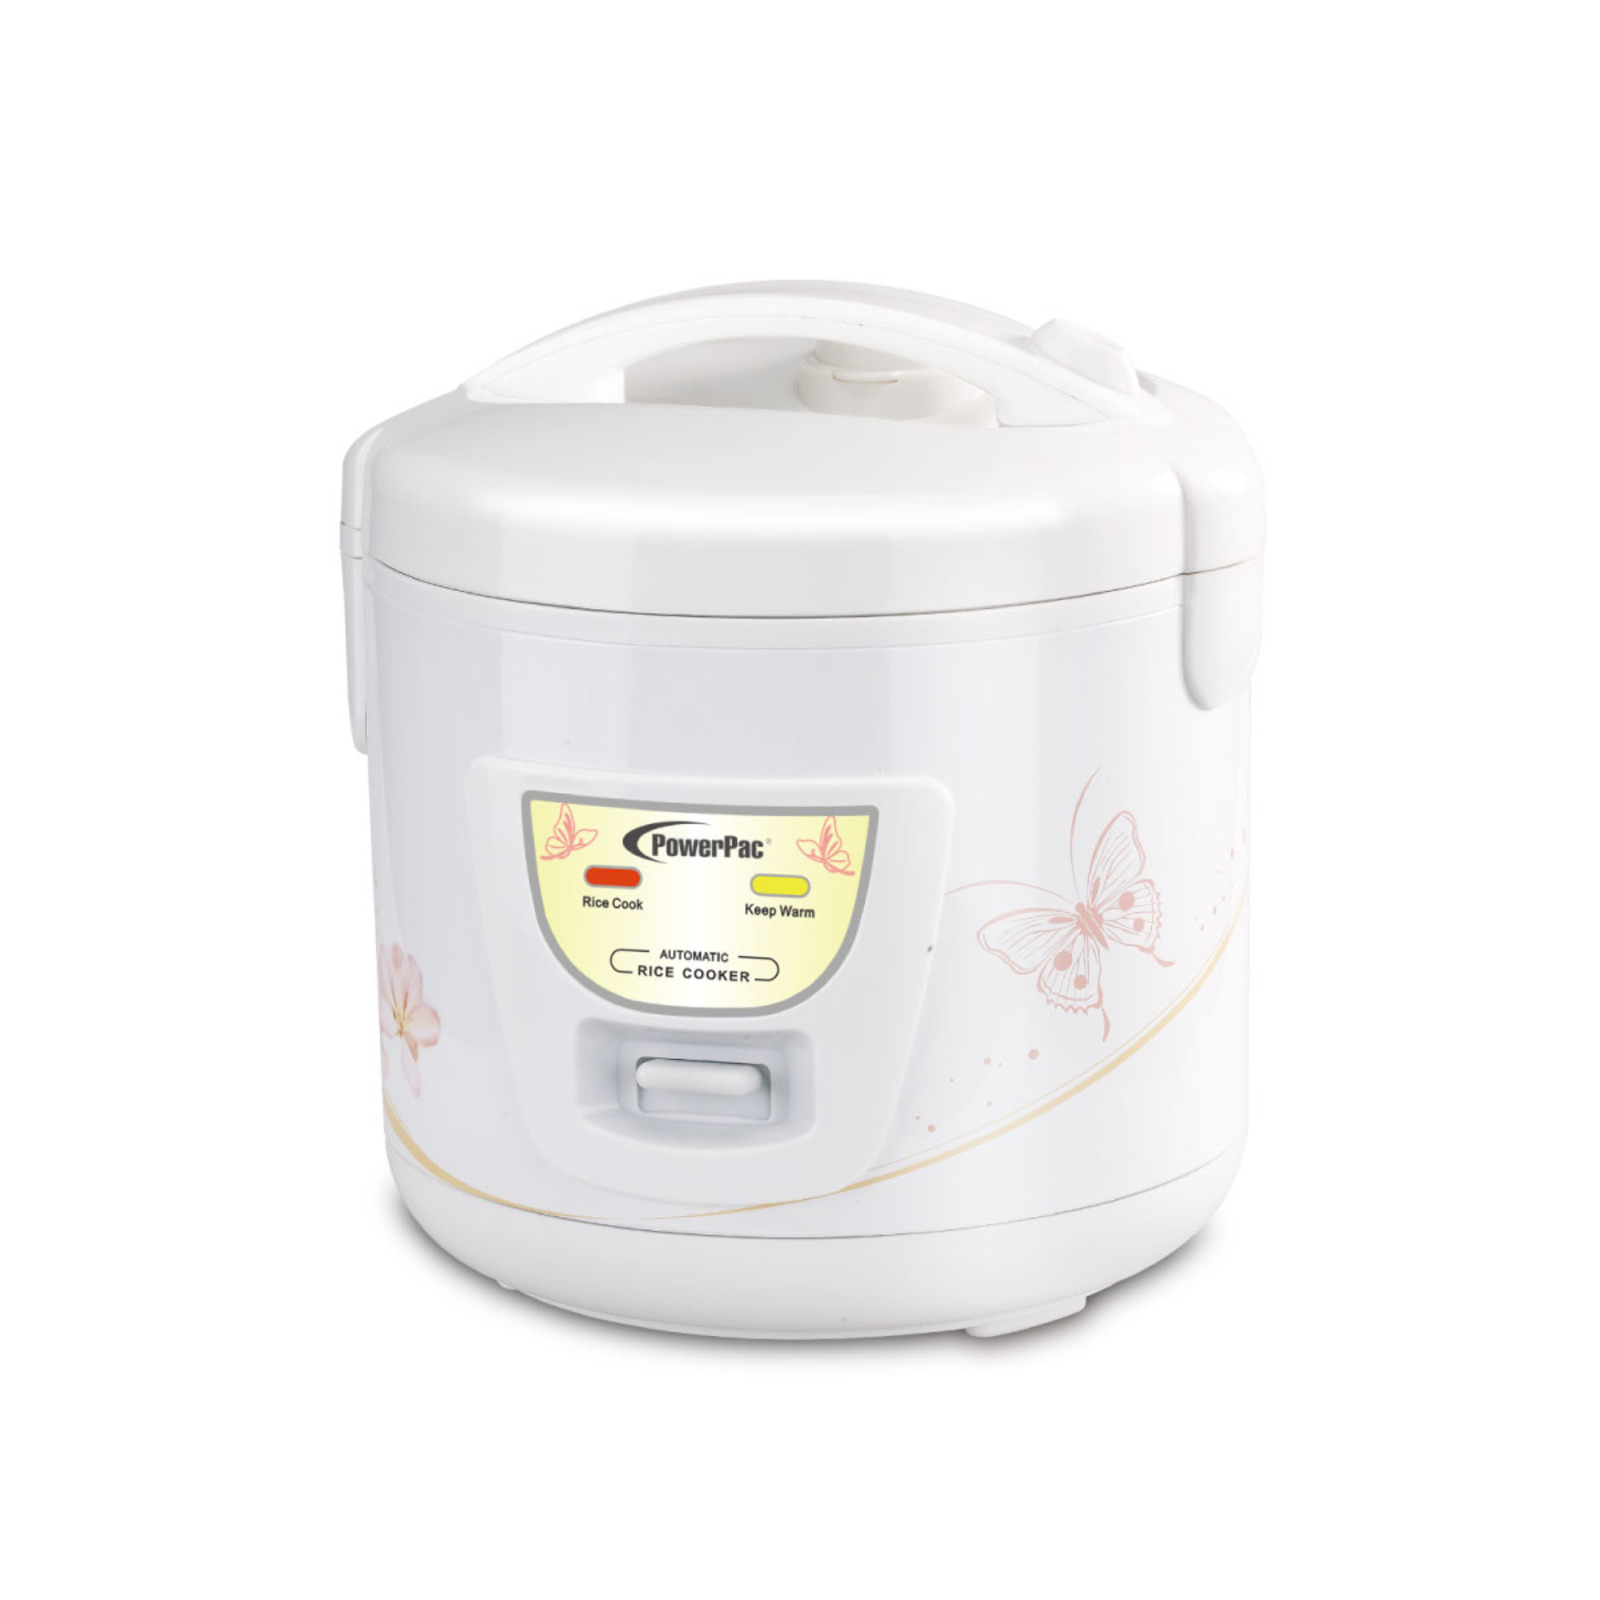 PowerPac 1.8L Rice Cooker With Steamer - PPRC18